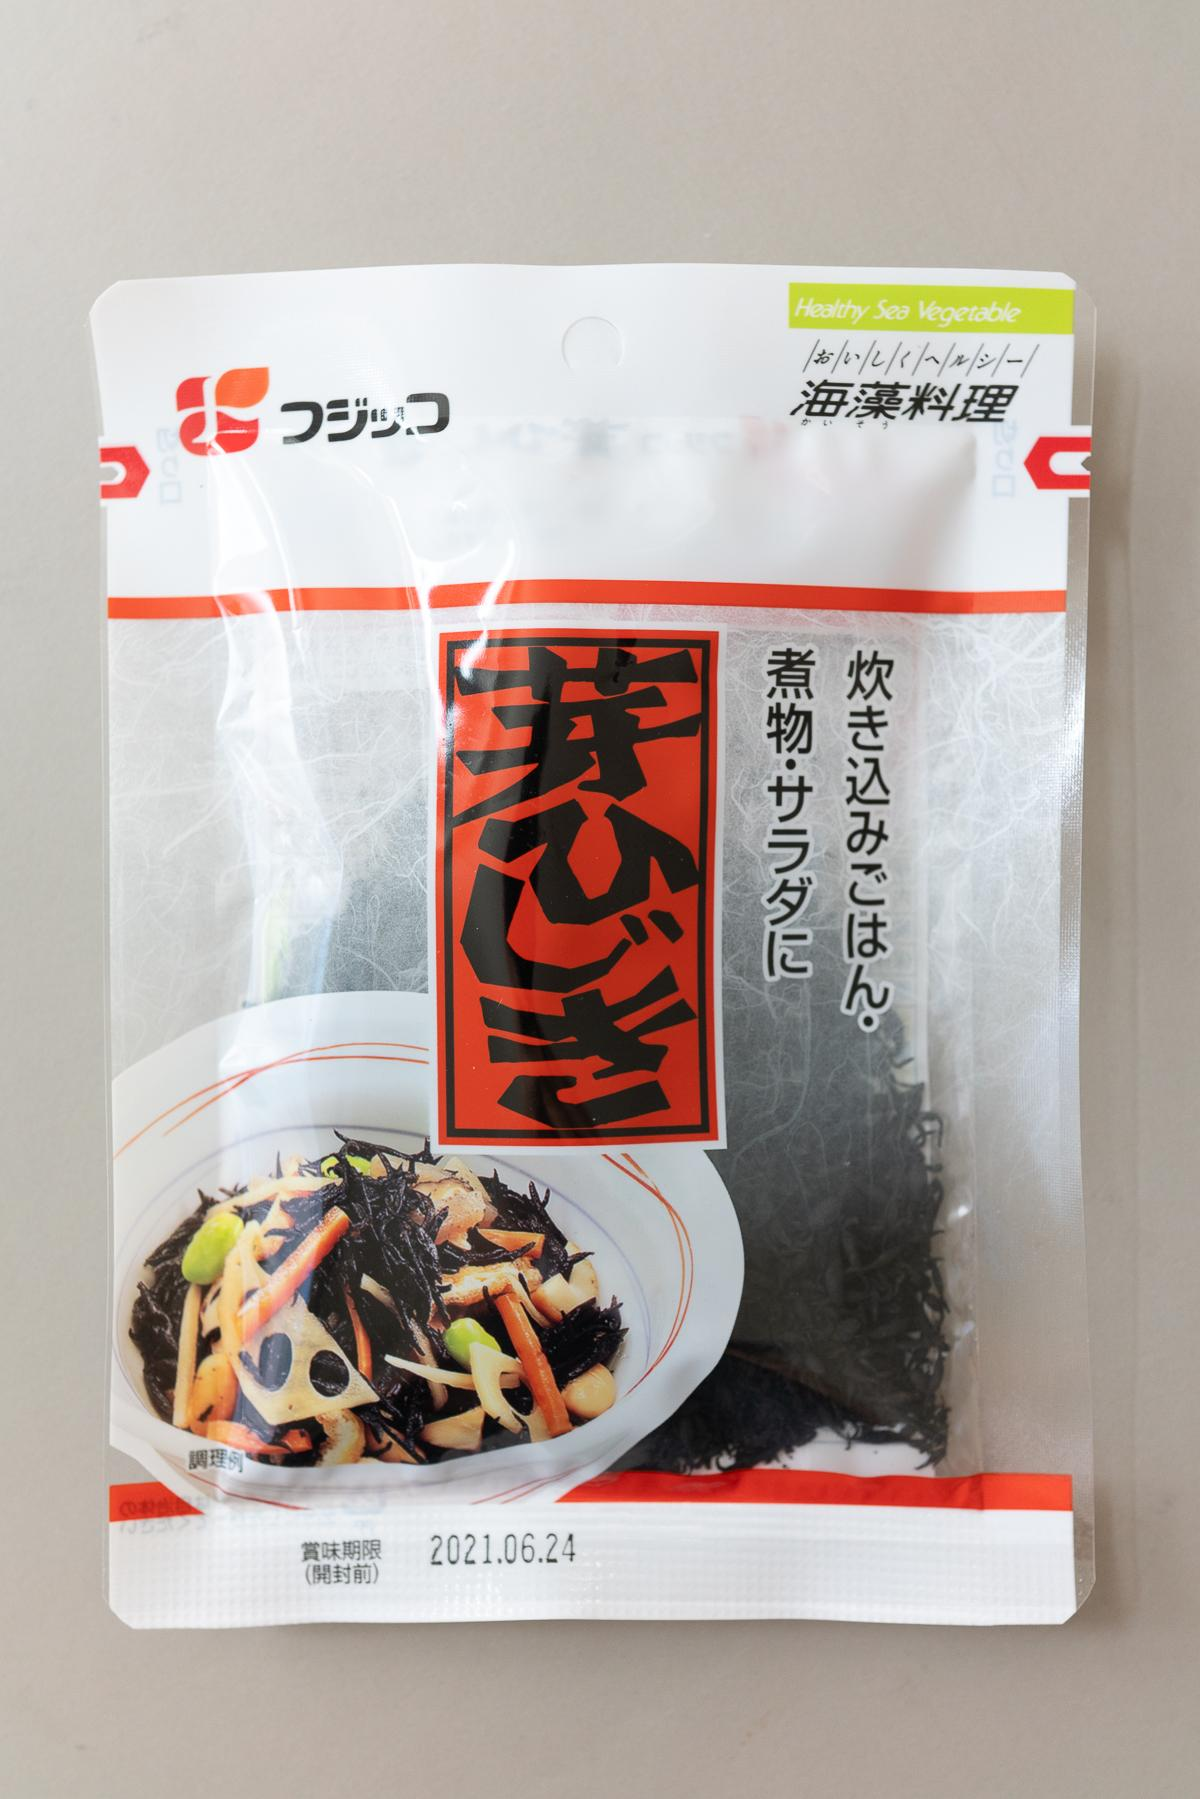 Package of dried hijiki